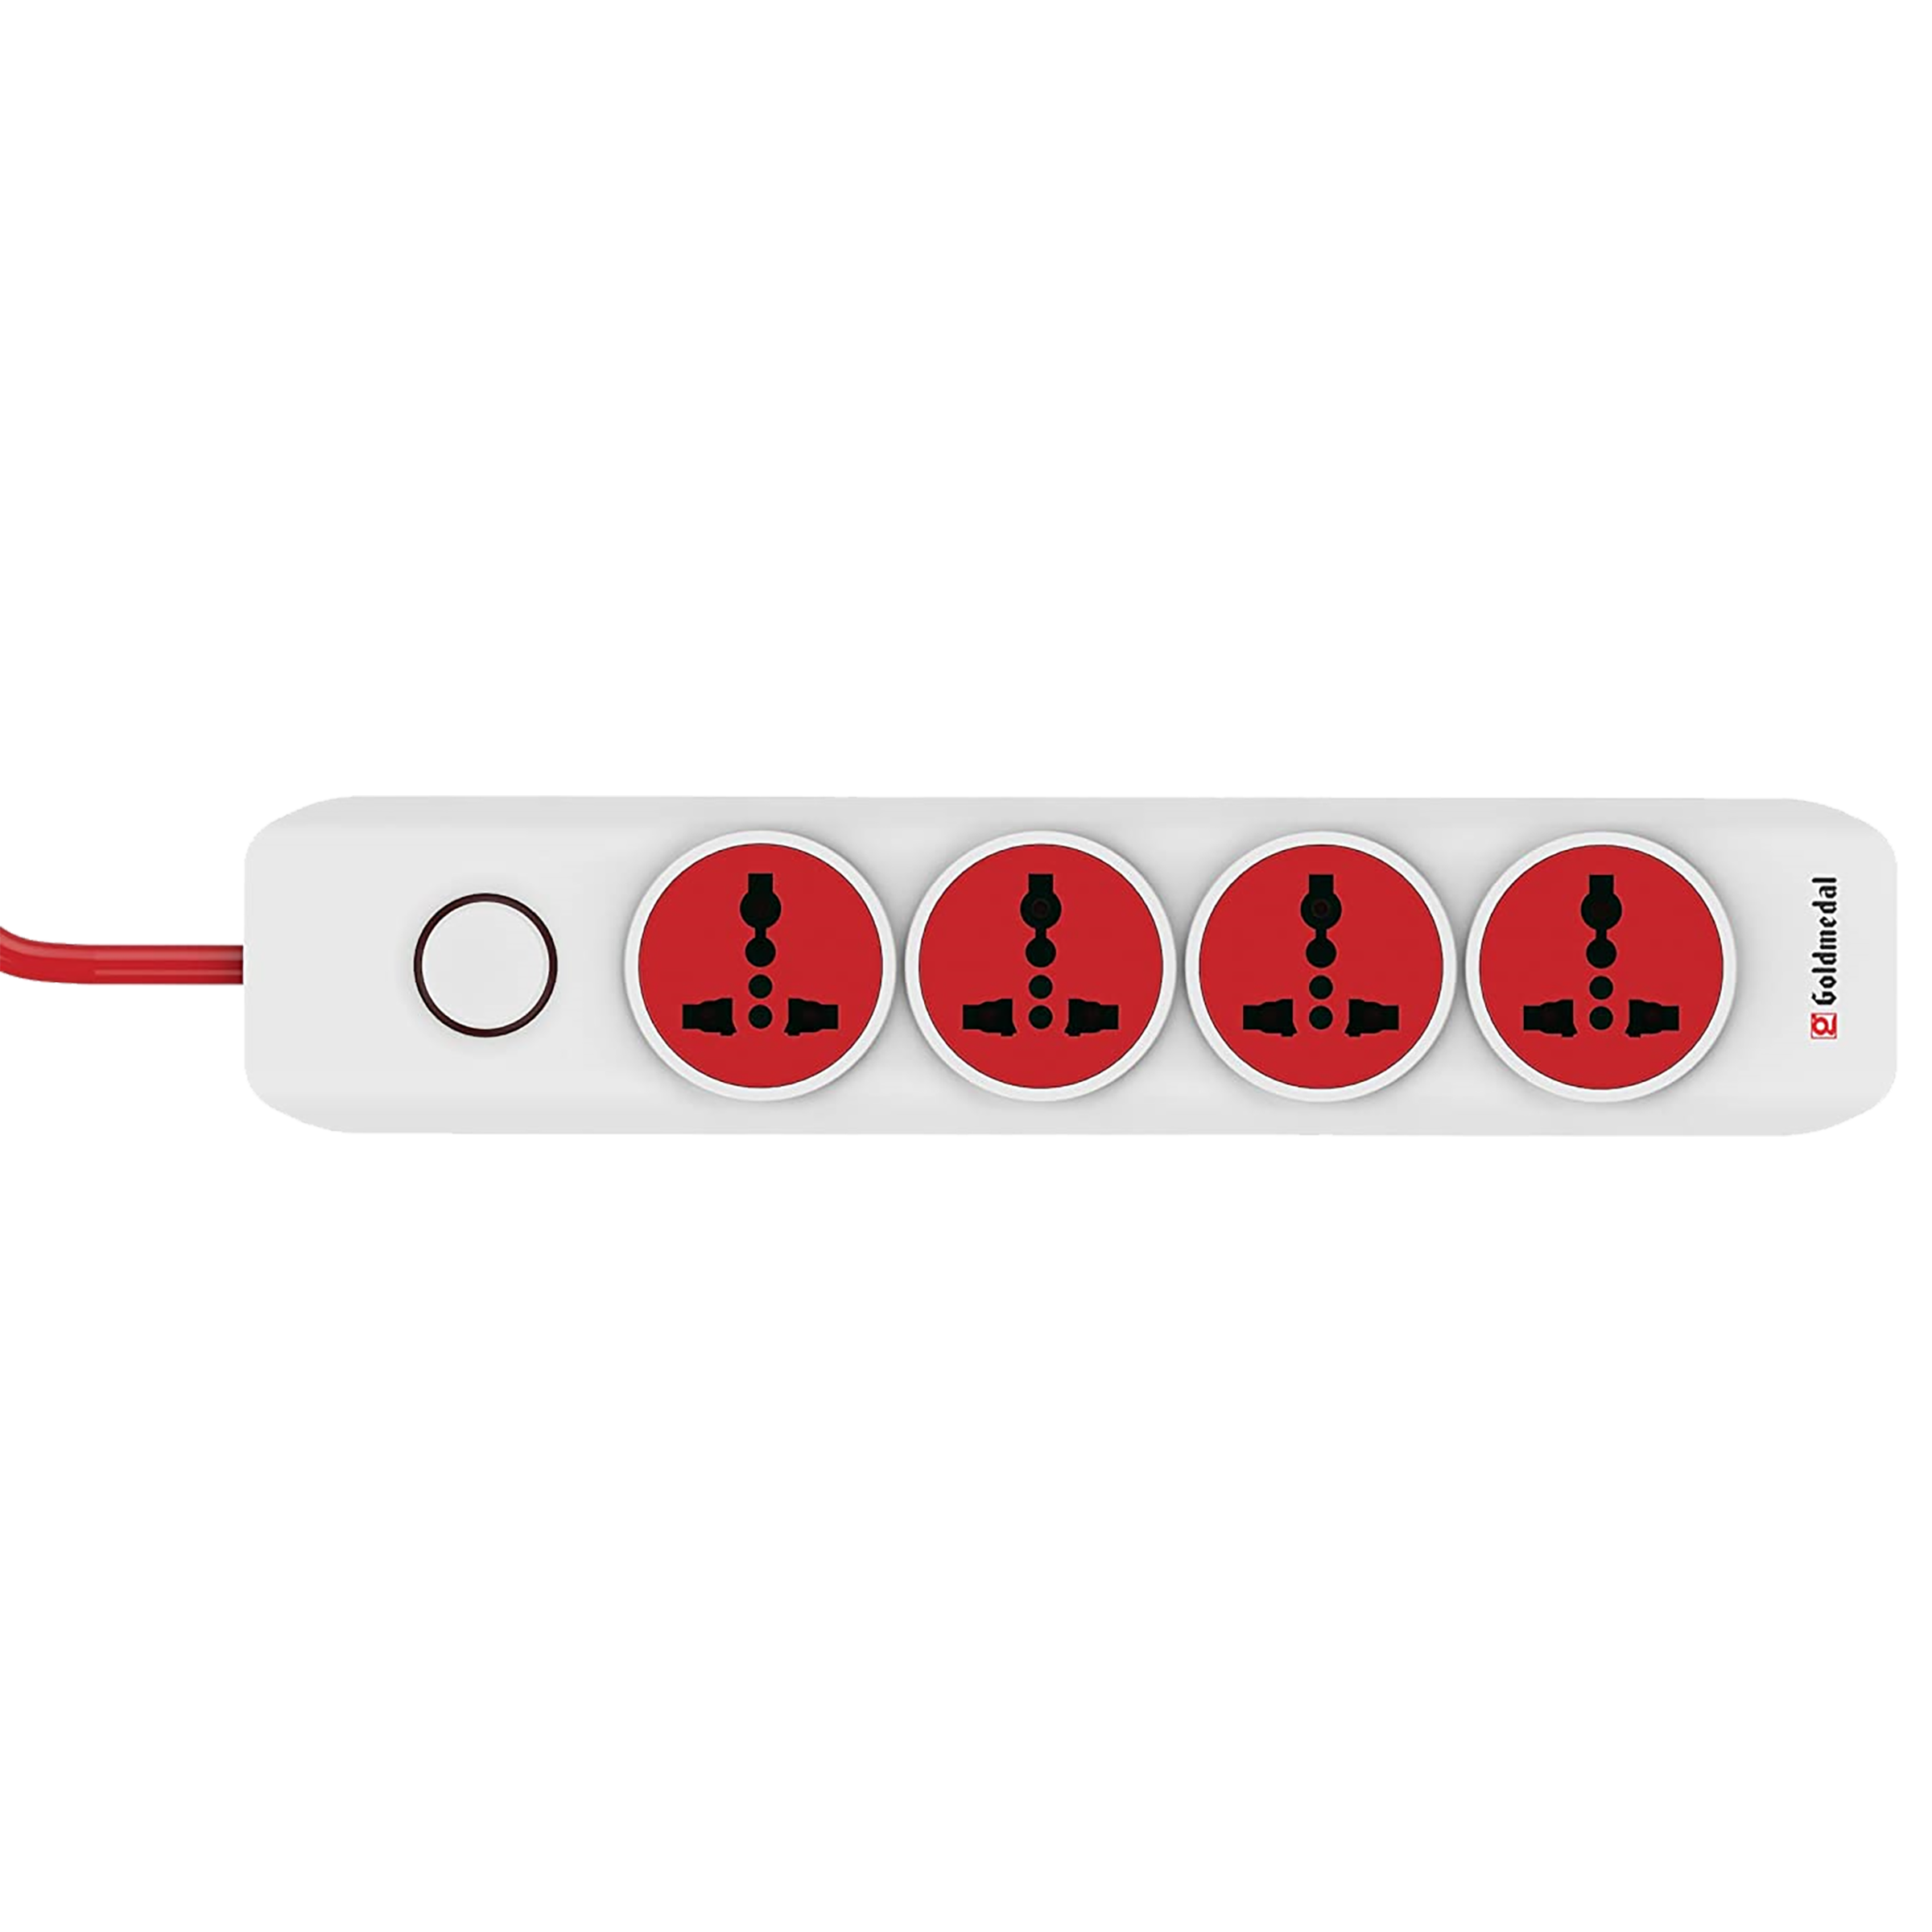 Goldmedal I-Design 6 Amp 4 Sockets Extension Board ( 2 Meters, Special Nylon Velcro Cable, 205102, White/Red)_1